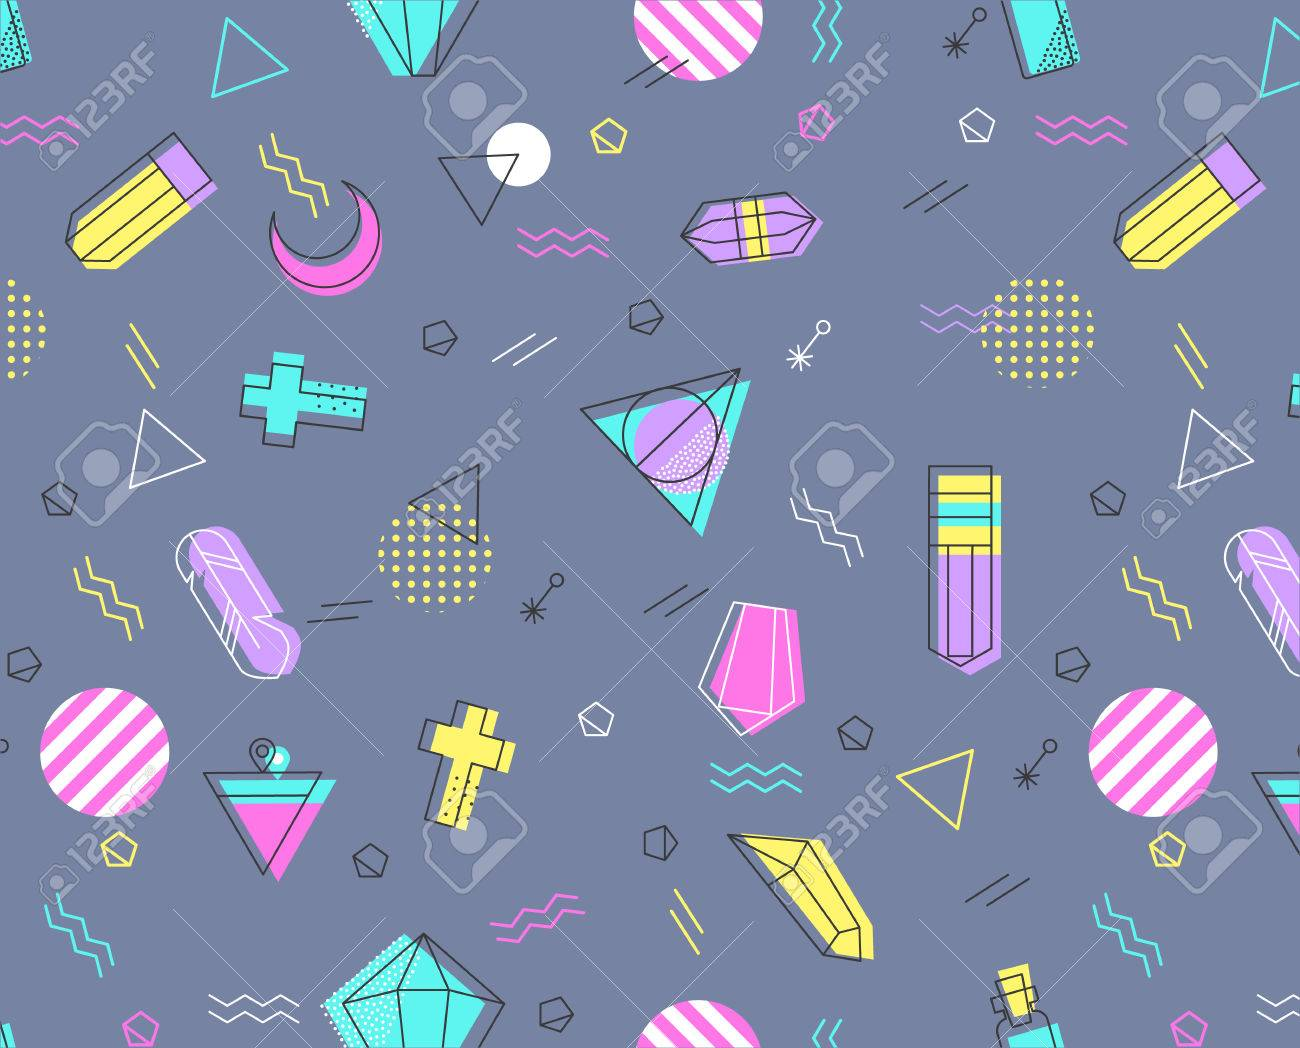 Retro 80's cover  For fabric, poster, business, wallpaper, phone